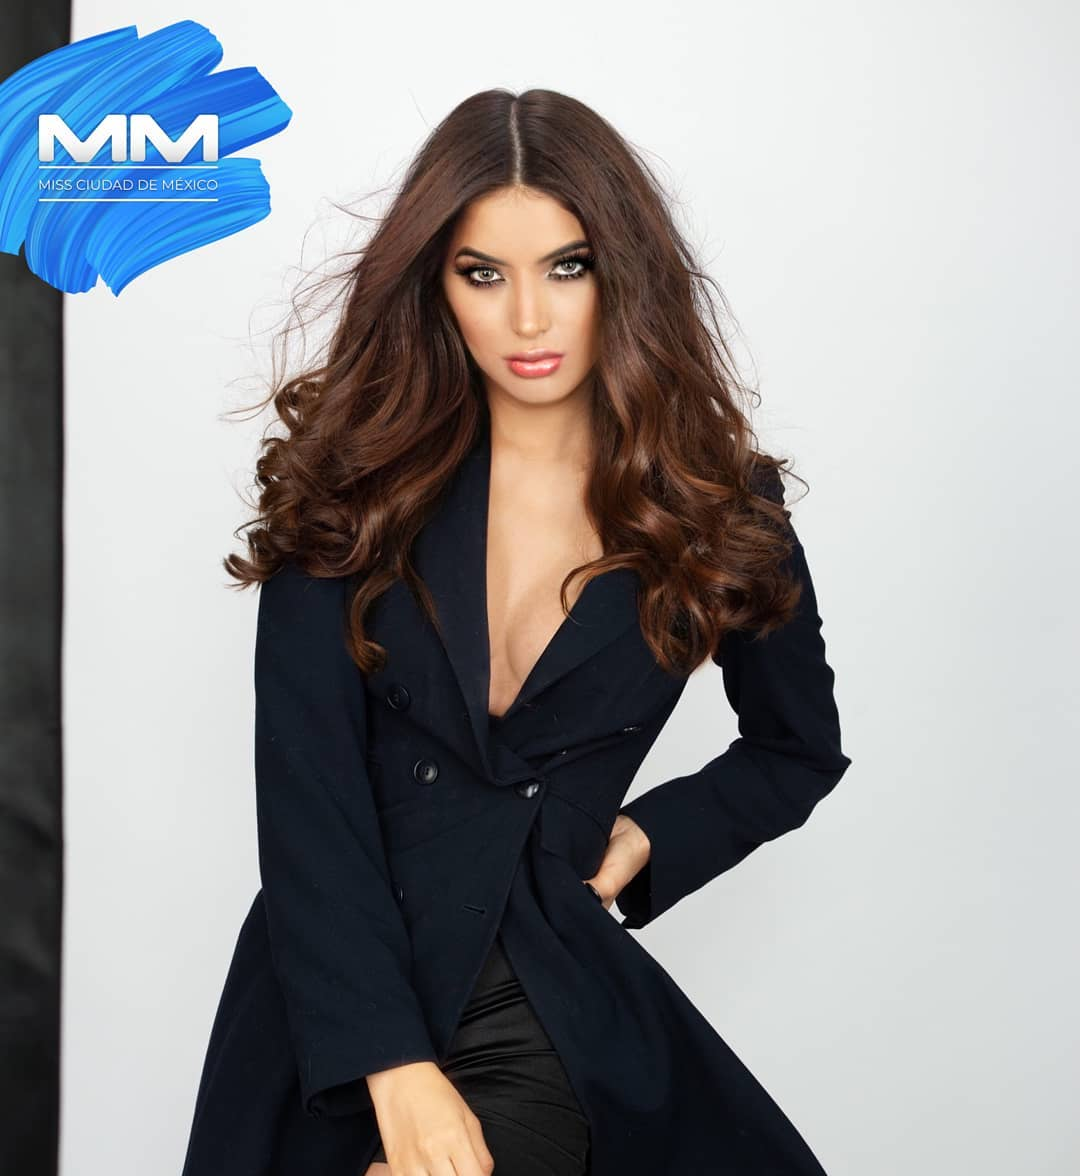 candidatas a miss mexico 2020, final: 31 oct. Sjhnayd6